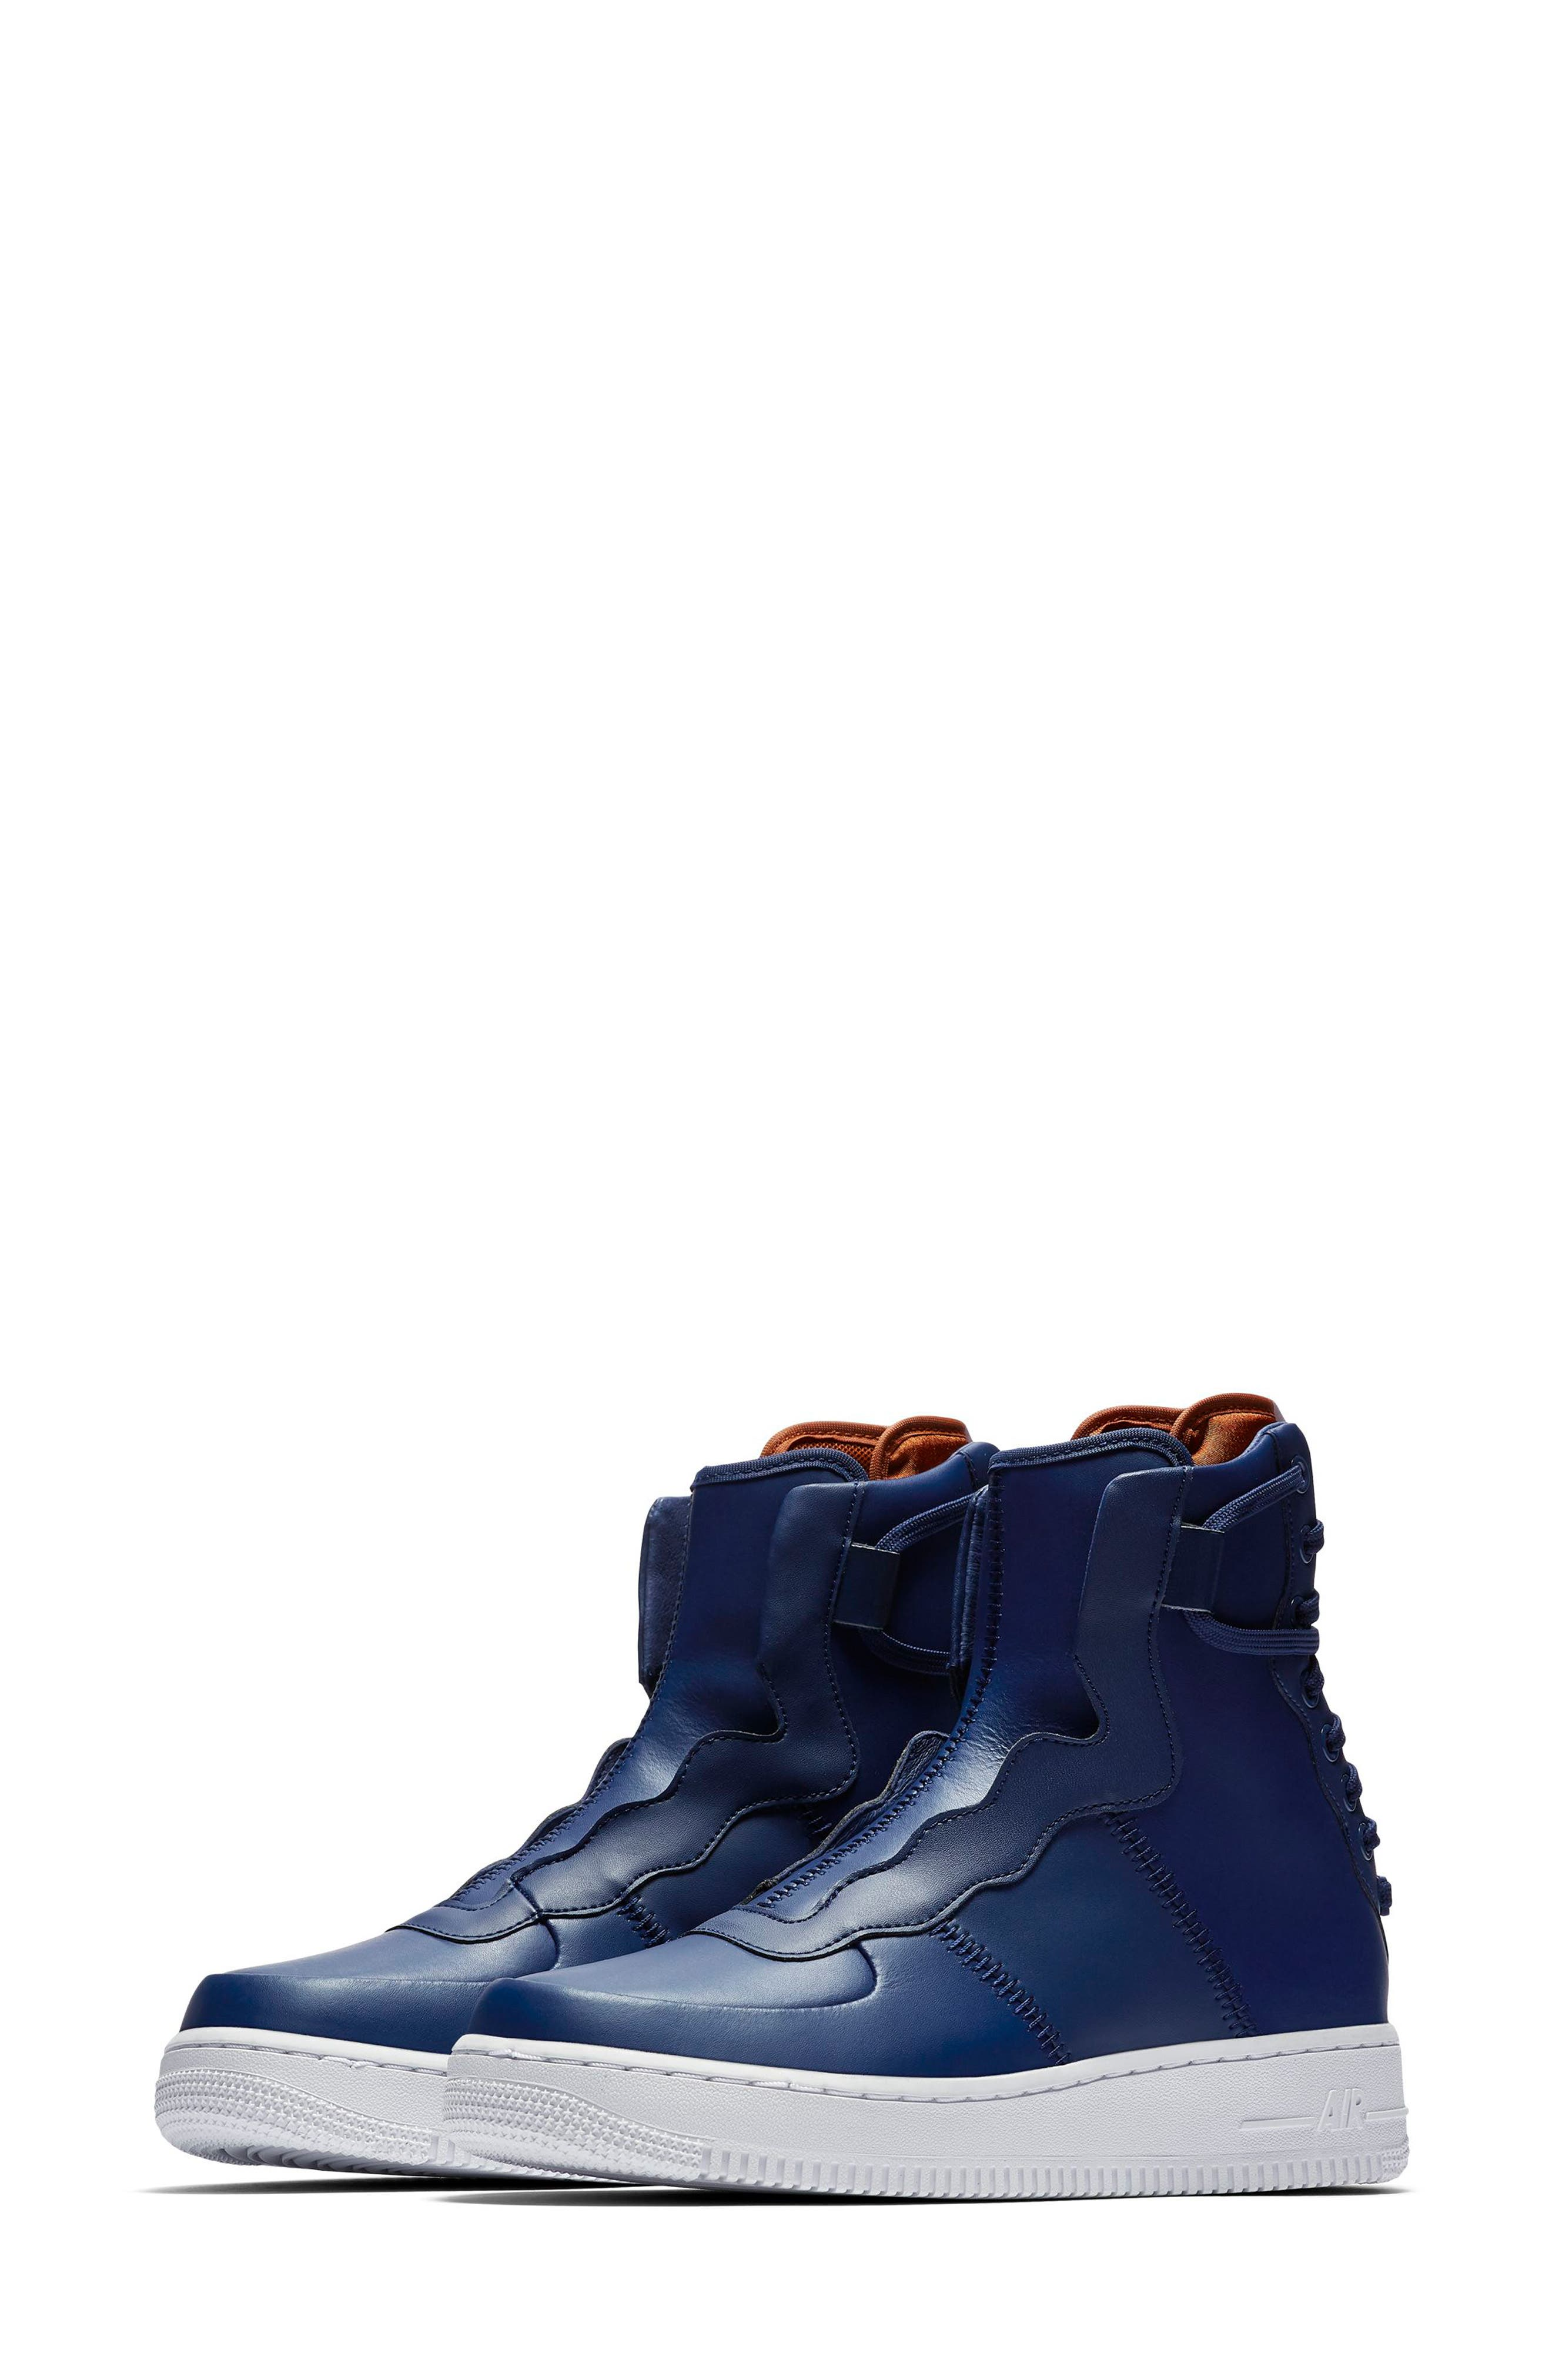 NIKE, Air Force 1 Rebel XX High Top Sneaker, Main thumbnail 1, color, BLUE VOID/ RUSSET/ WHITE/ BLUE